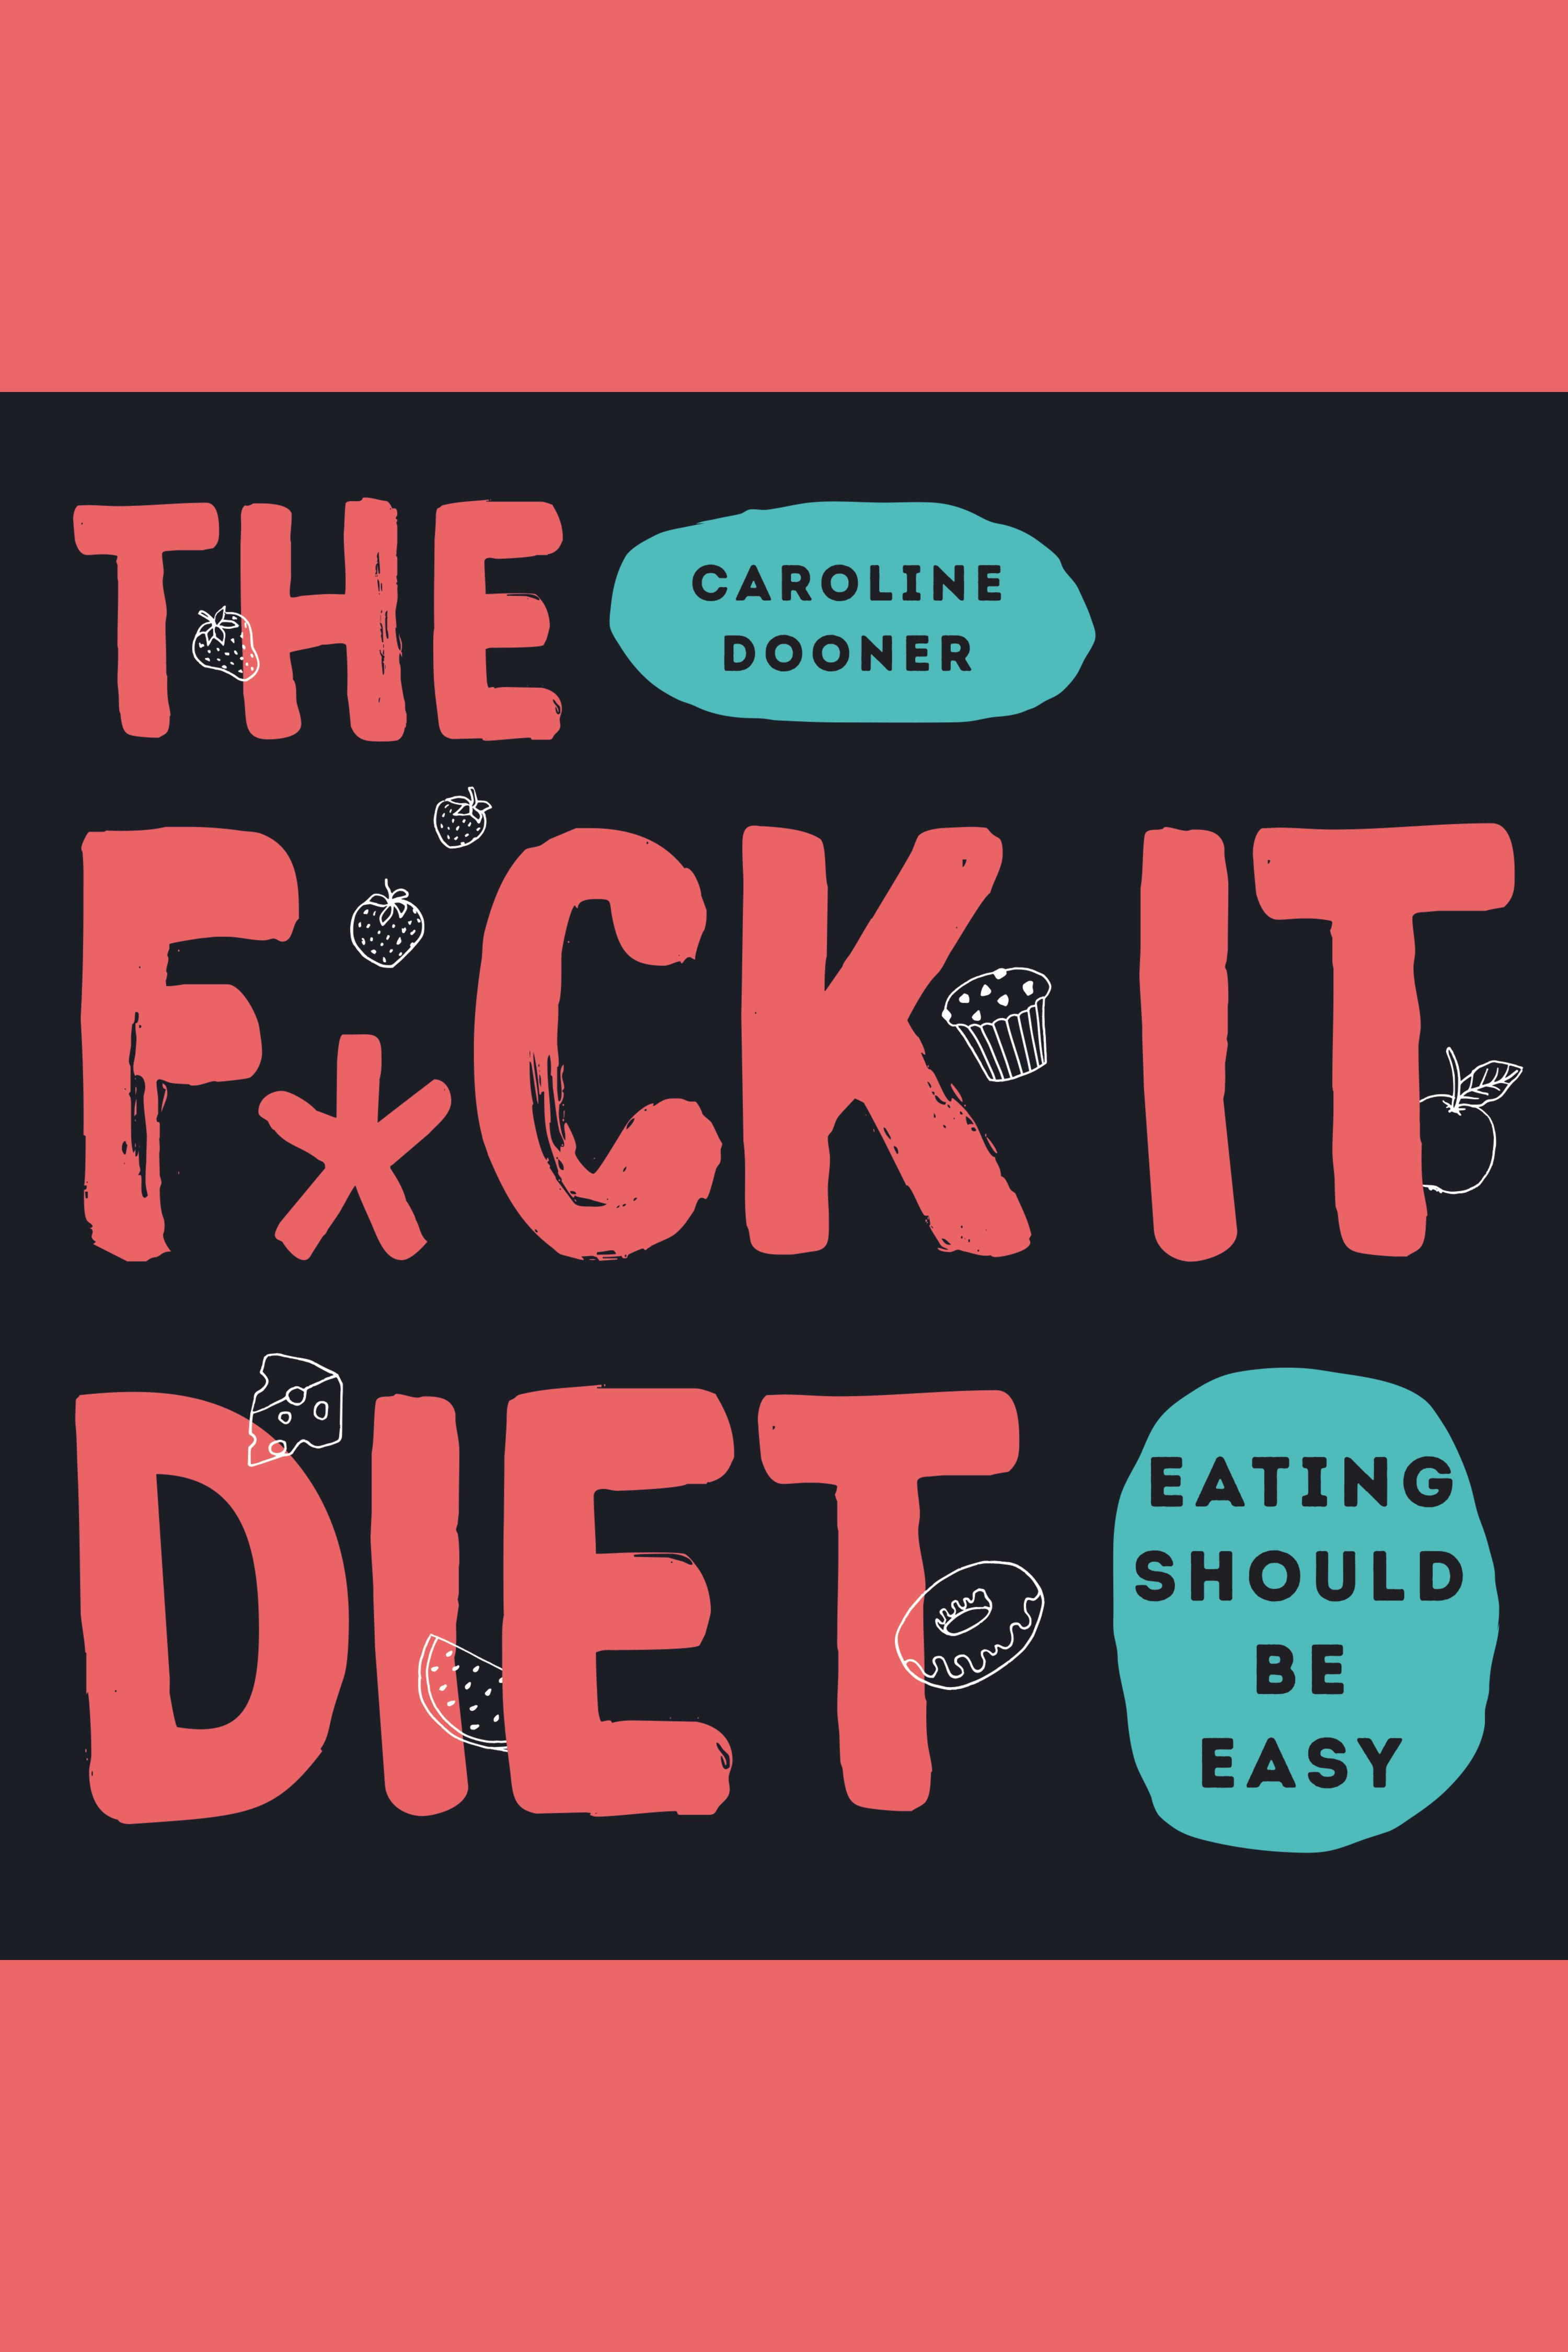 F*ck It Diet, The Eating Should Be Easy